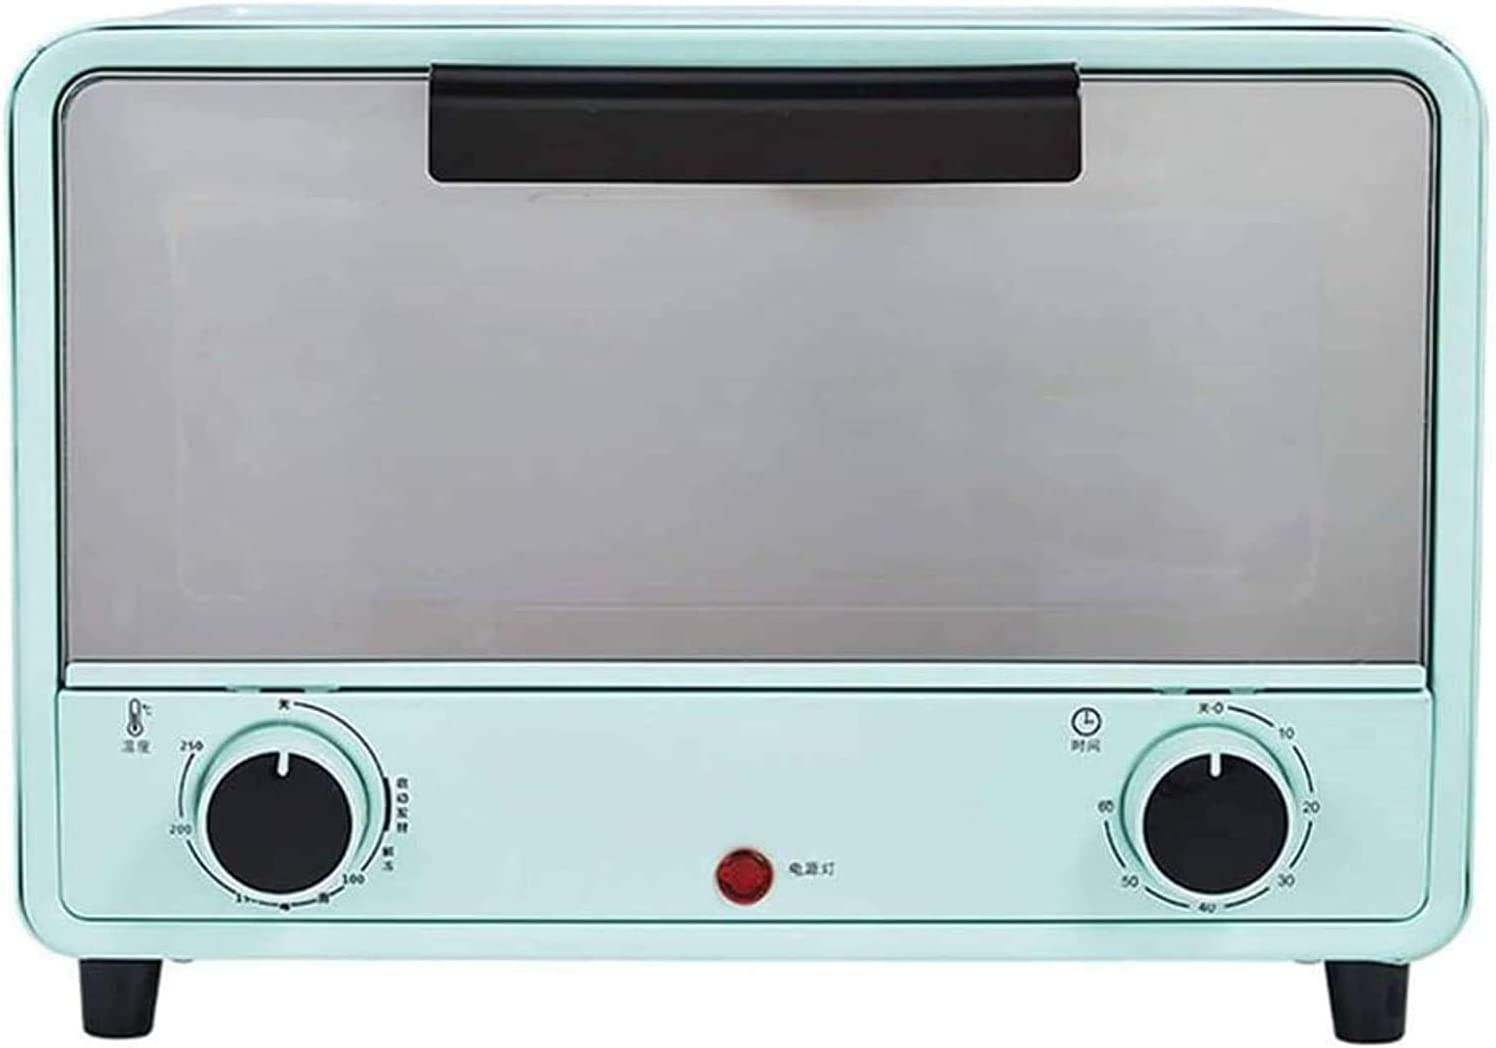 GYUGSD 12L Mini OFFicial shop Oven Electric Con Toaster Regular dealer Temperature Adjustable